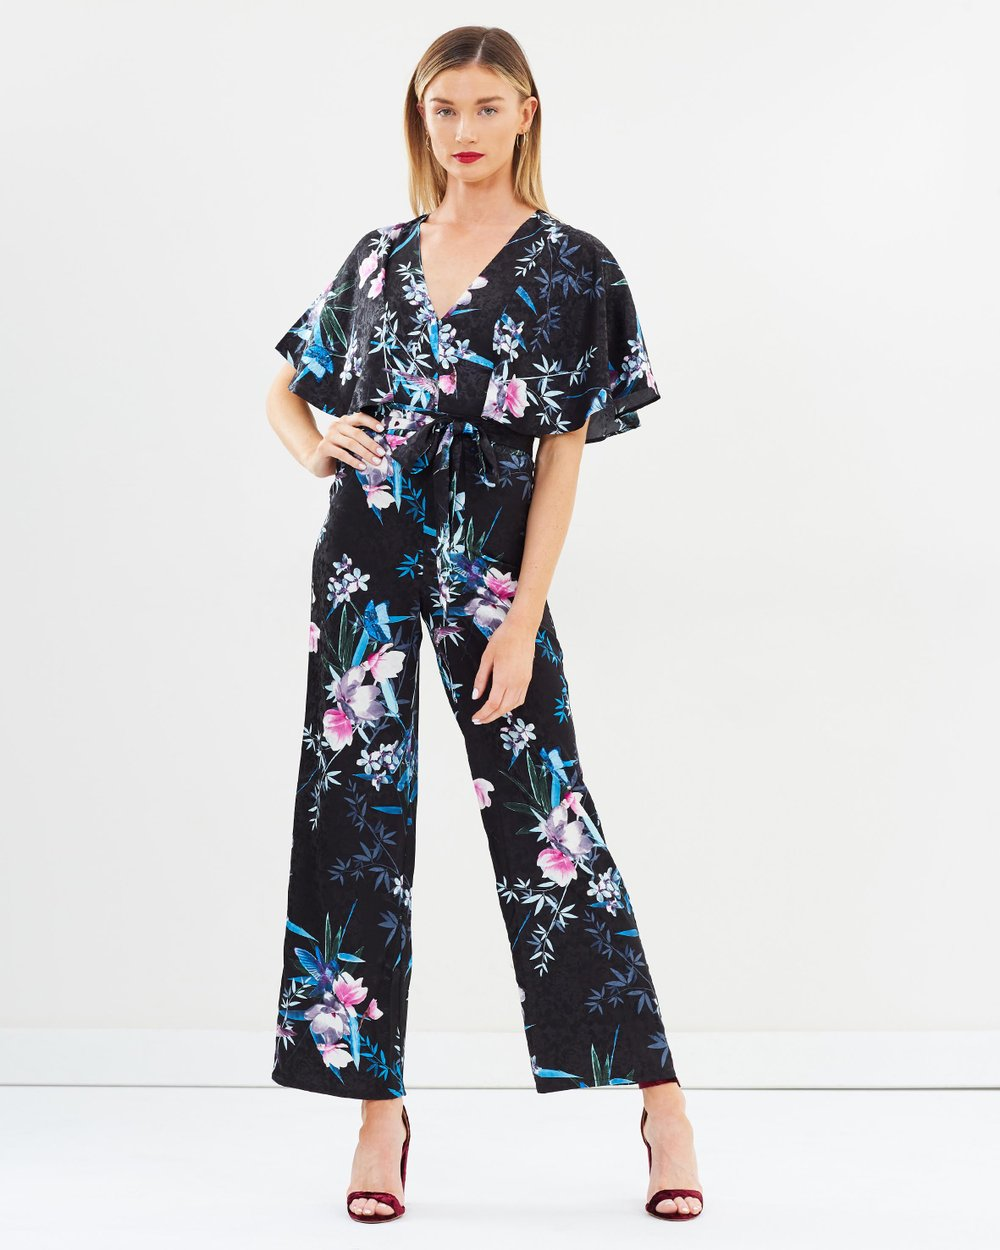 74ffee45f2 Amelia Print Cape Jumpsuit by Lipsy Online